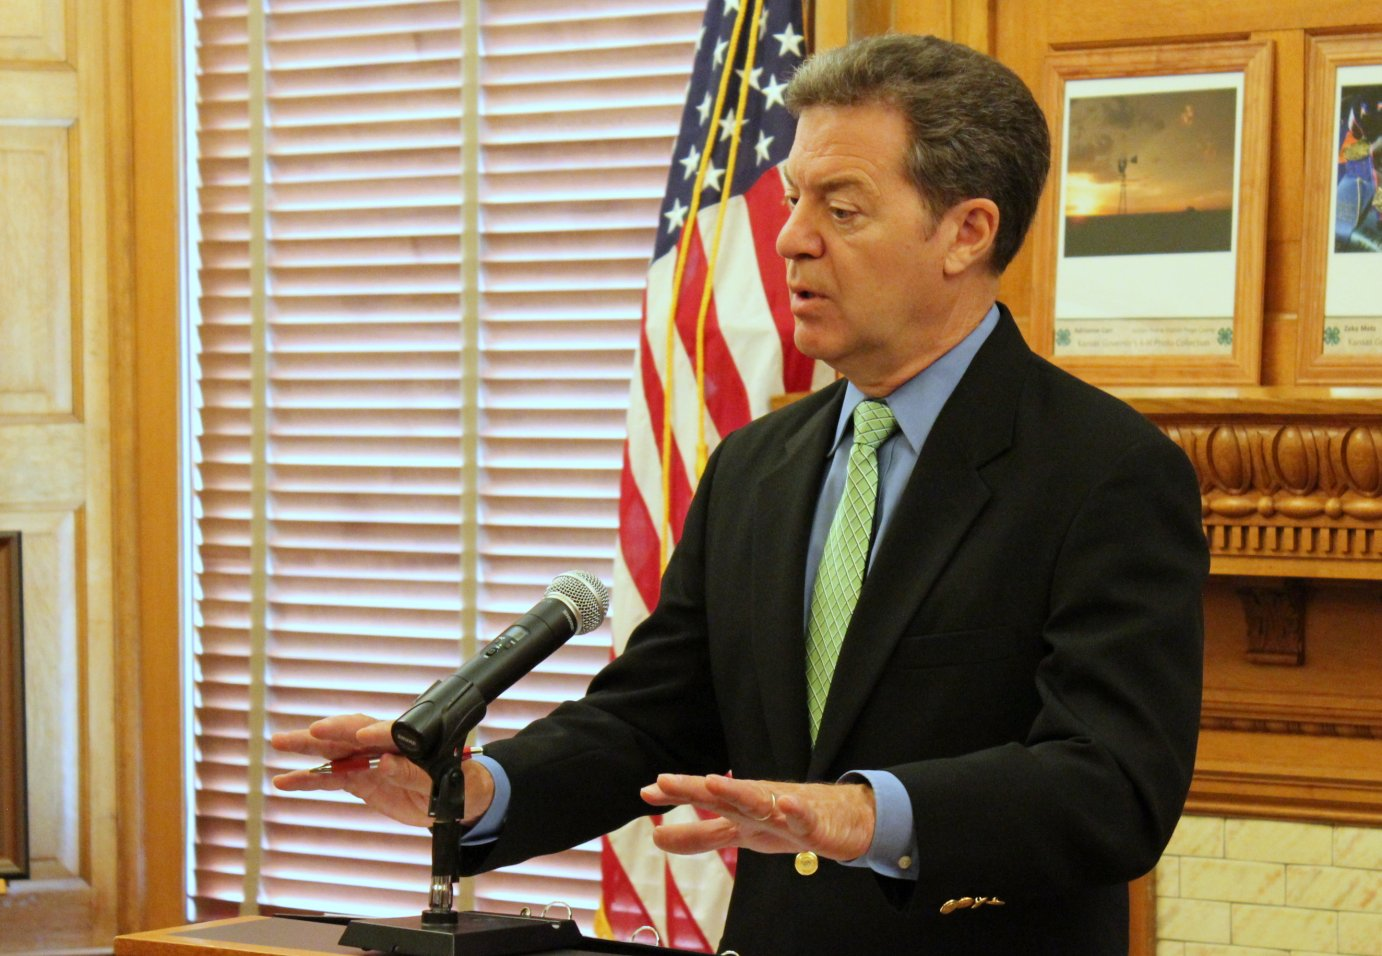 Brownback speaking to reporters last month. (Photo by Stephen Koranda)